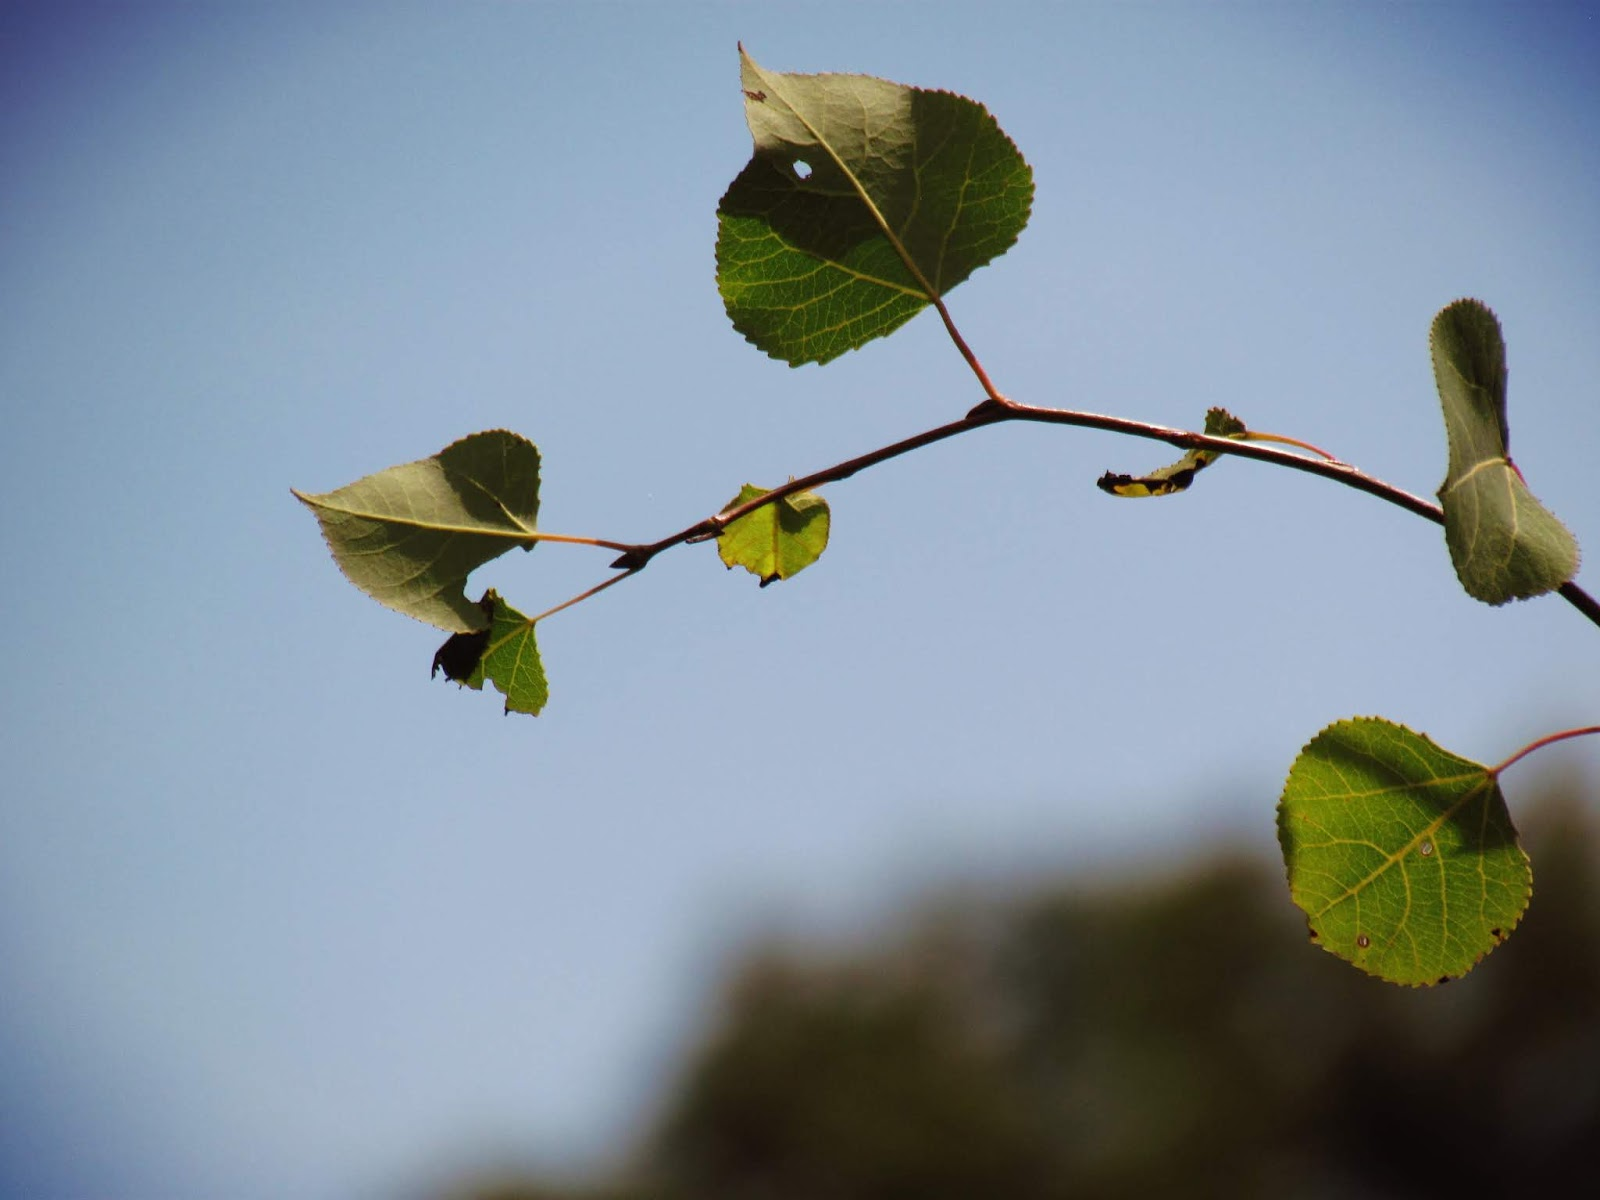 Blur Photography of a Vining Leaf in Nature and Tree Branches Reaching for Blue Skies in a Moody Photograph